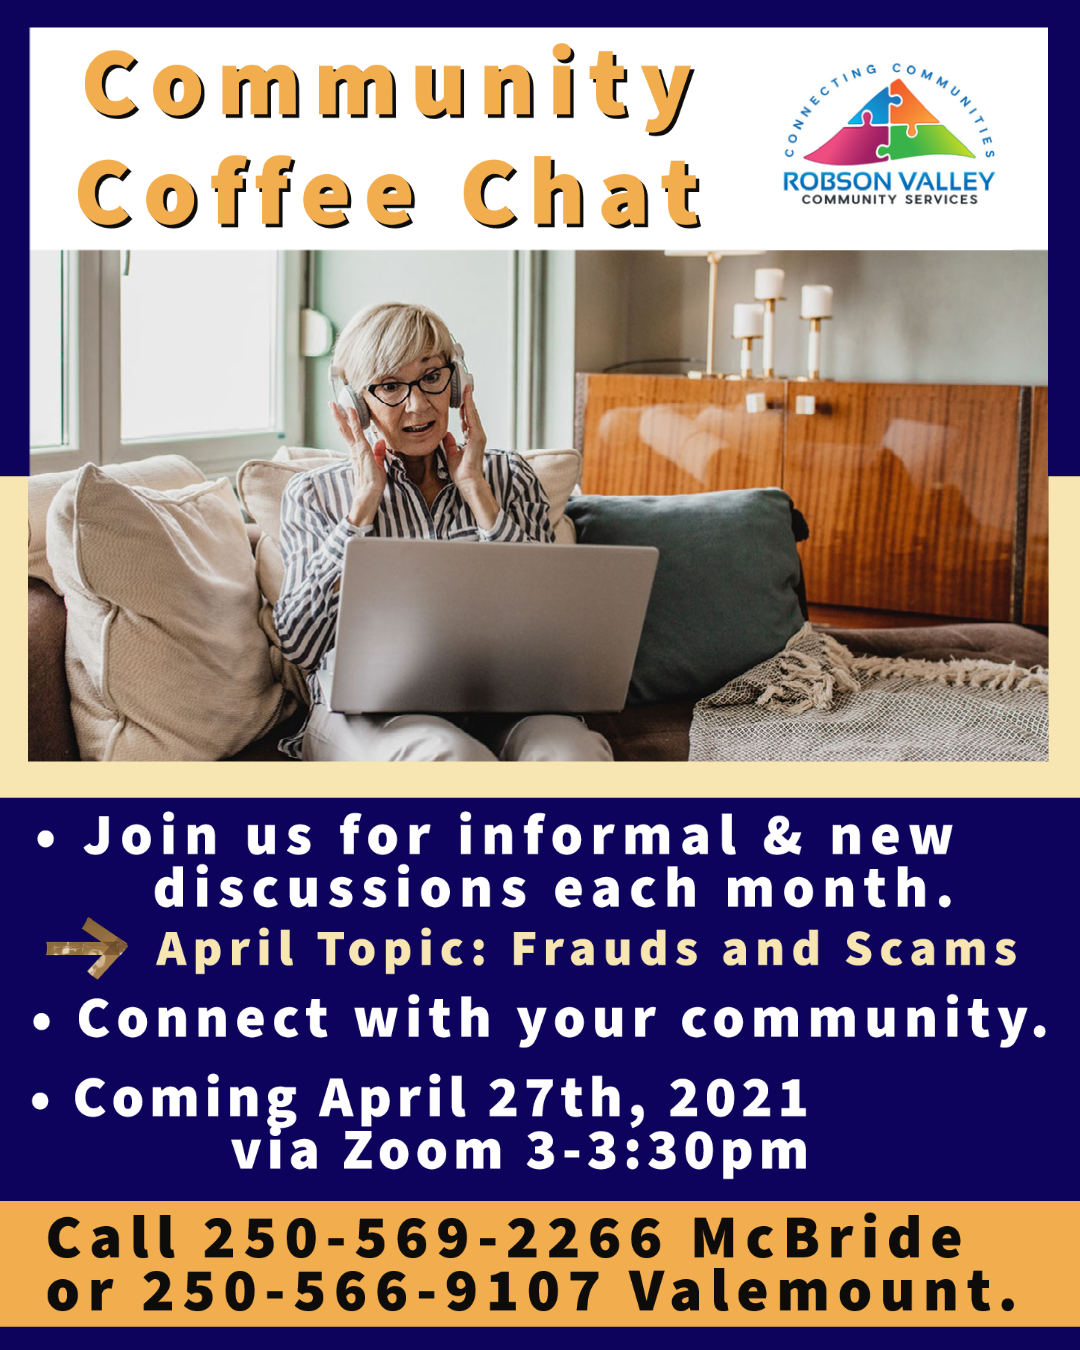 Community Coffee Chat: Frauds & Scams